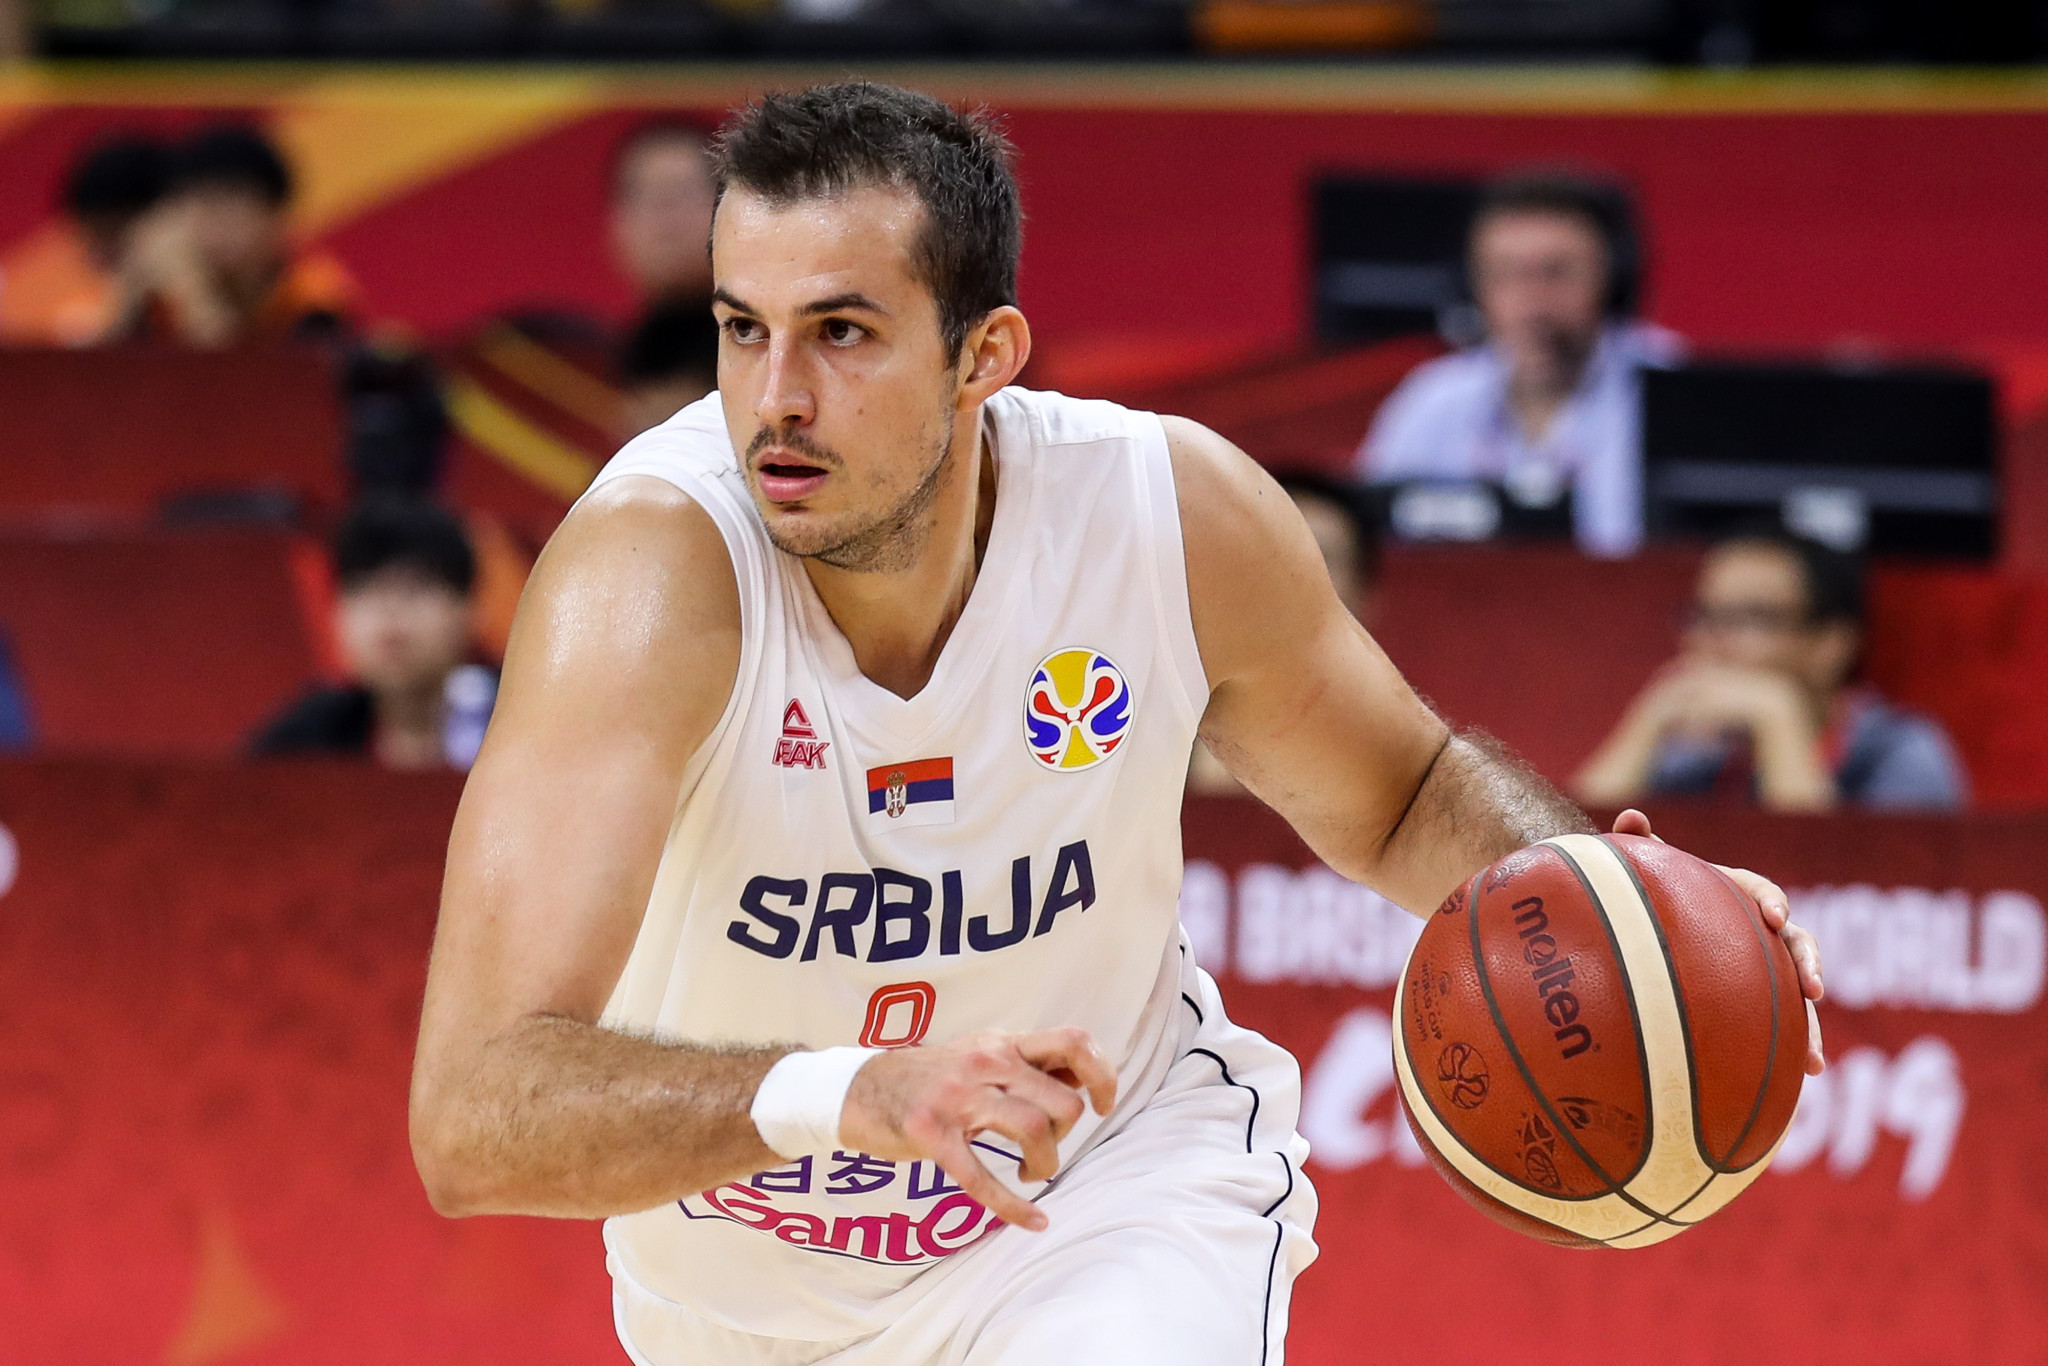 Serbian basketball star Nemanja Bjelica has targeted bouncing back from injury disappointment to finally appear at the Olympic Games ©Getty Images